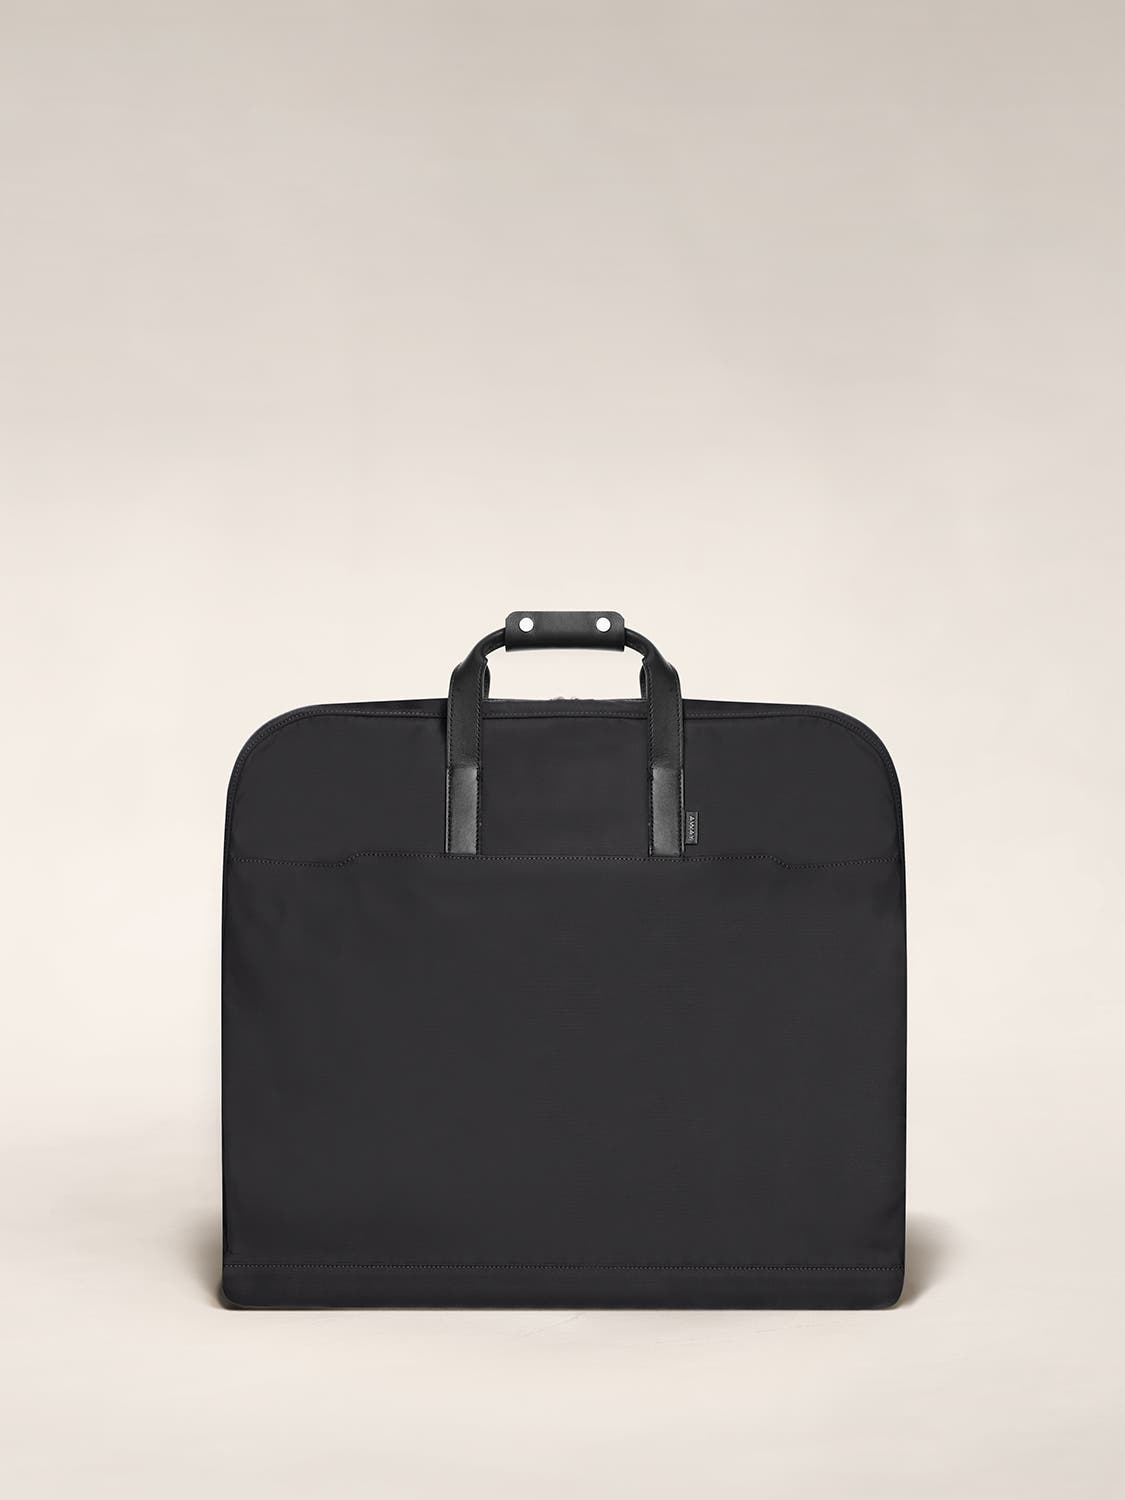 Black garment bag folded view with leather trim handles.